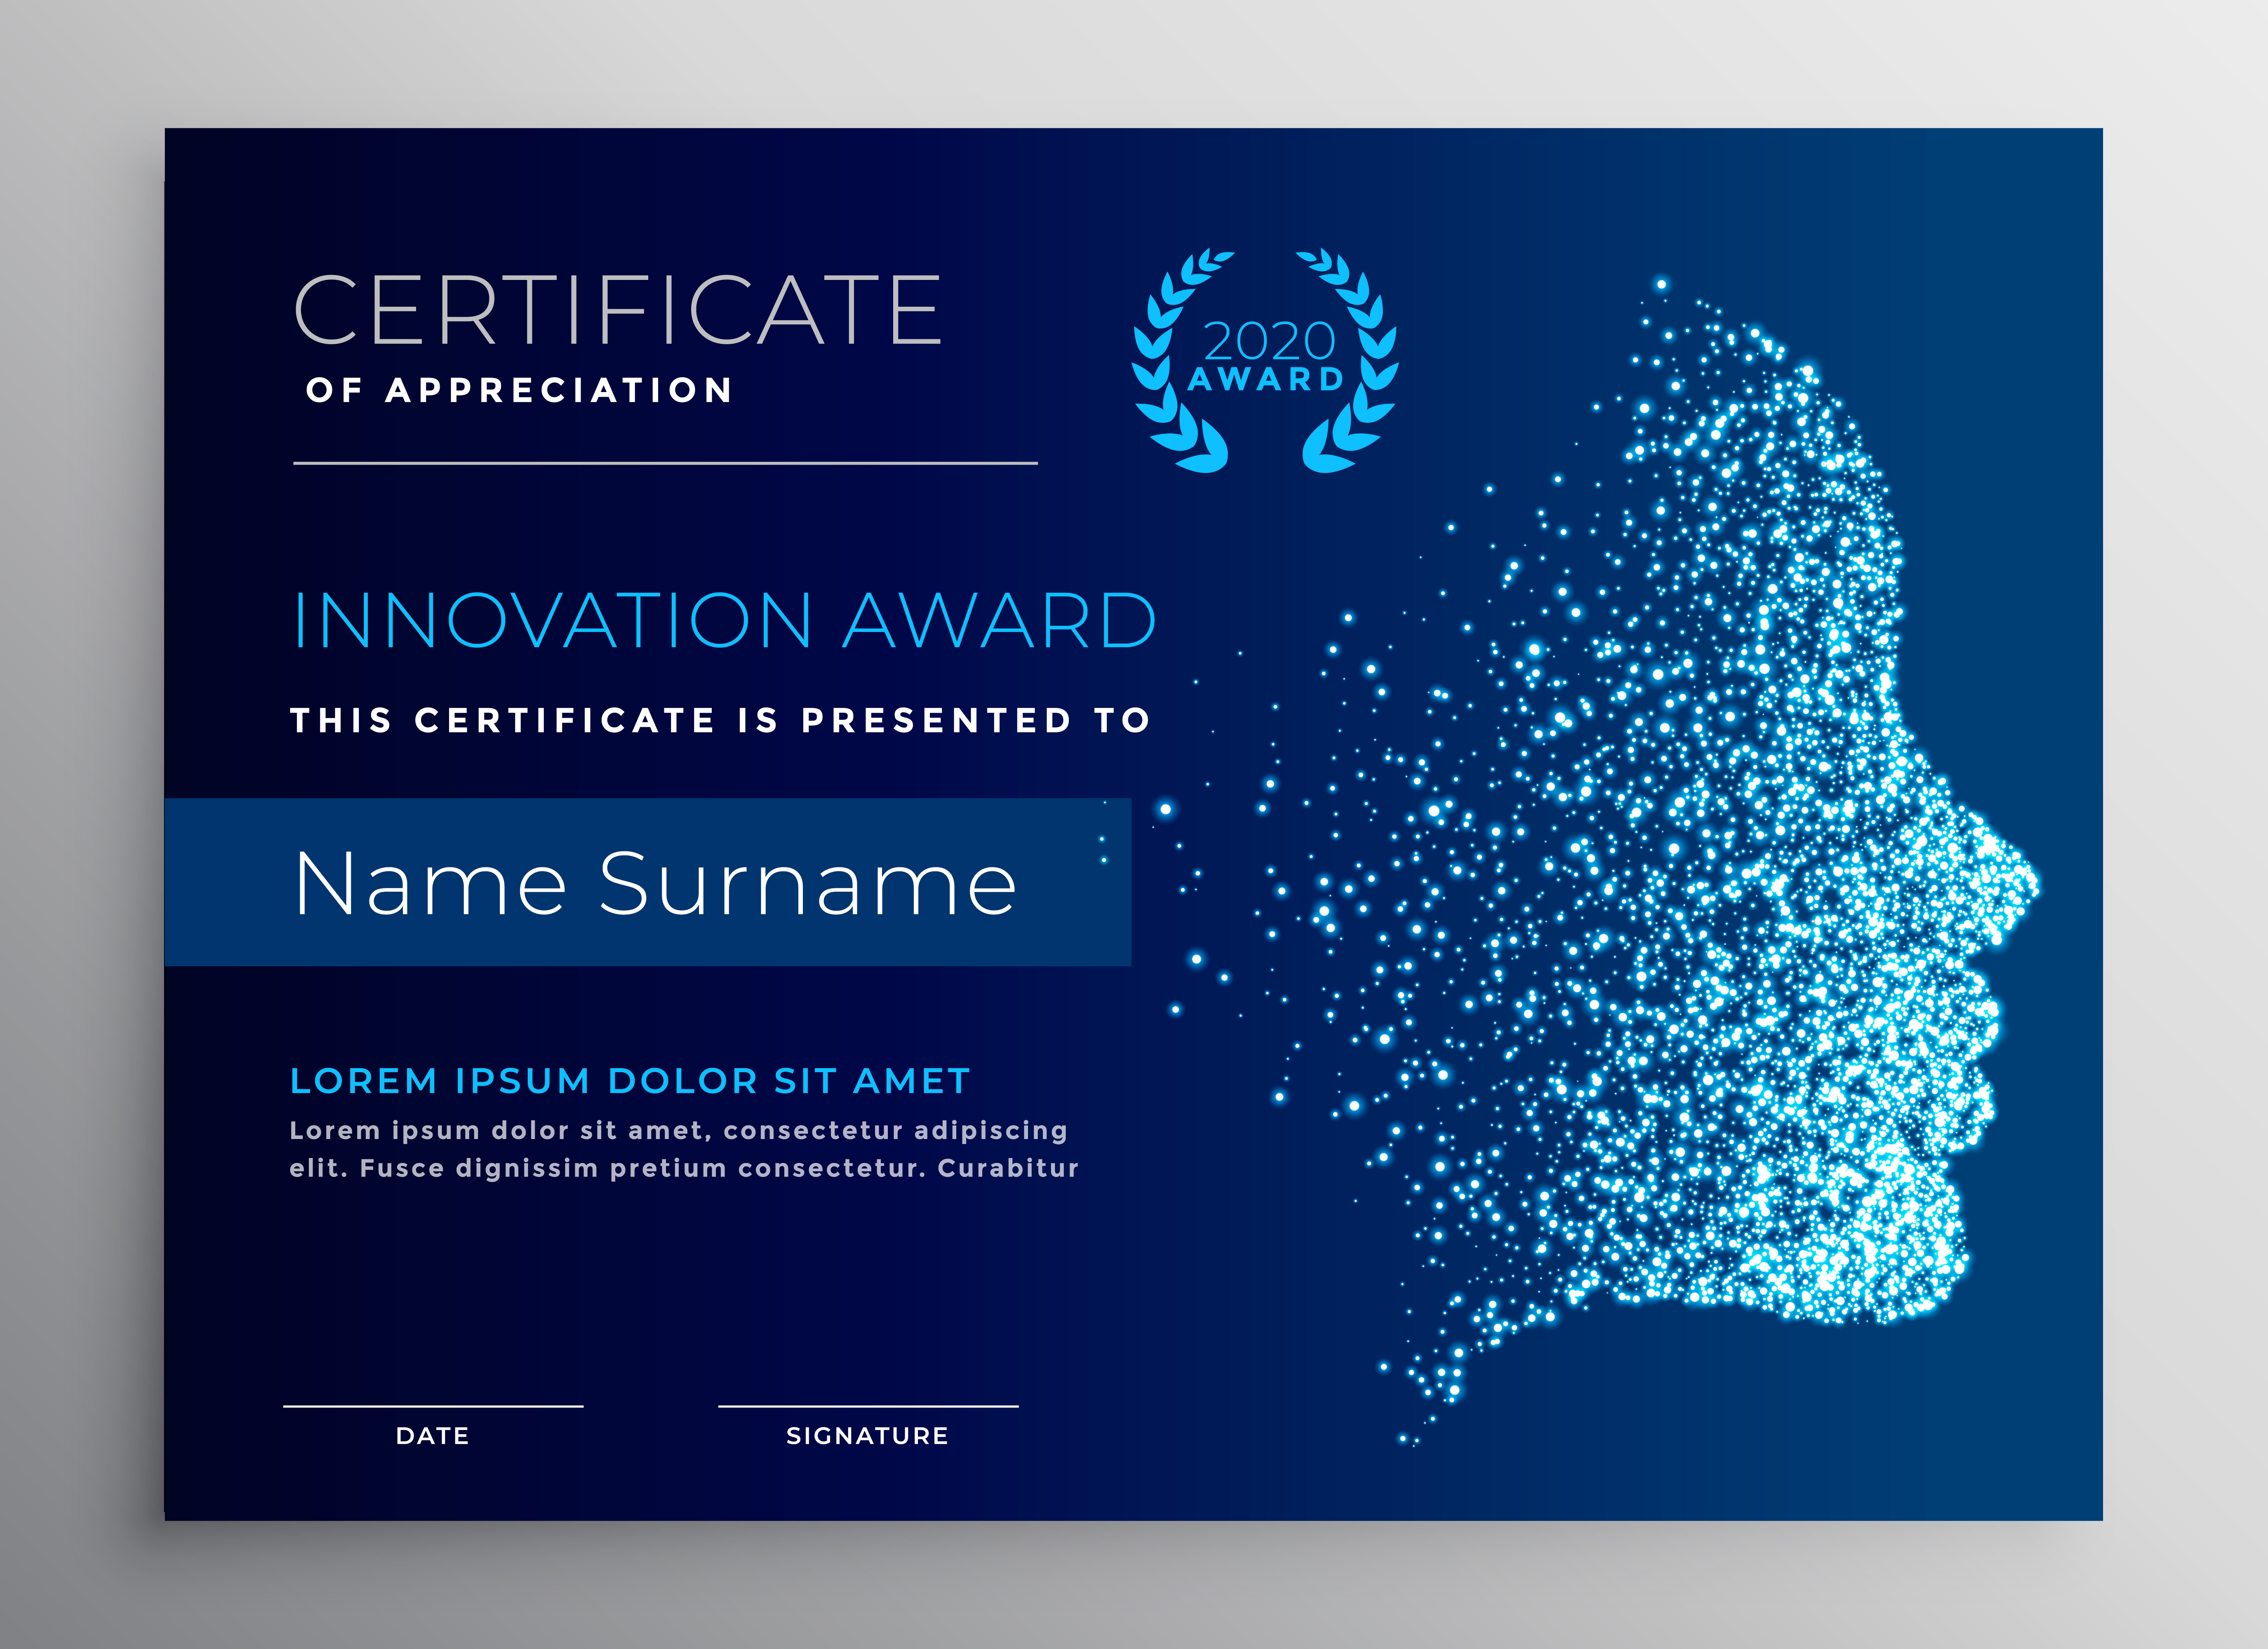 innovation award certificate design with particle face